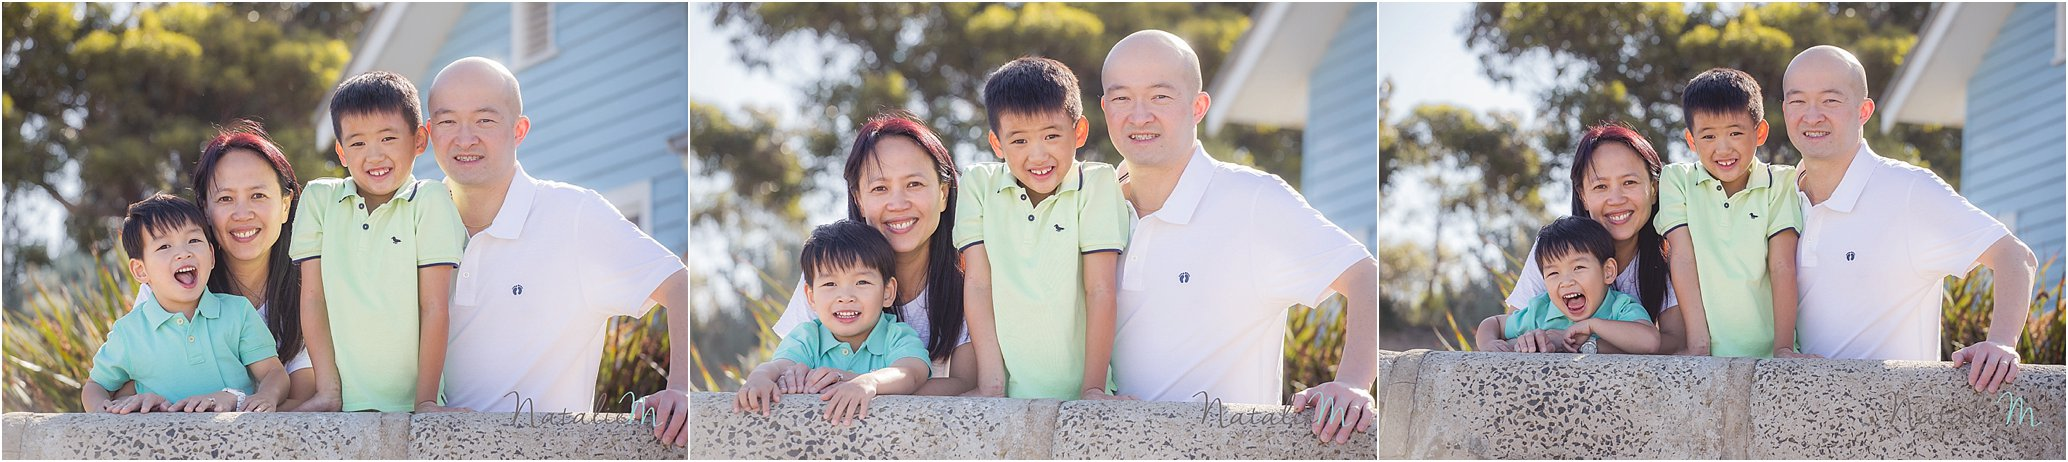 Family Photography Geelong_0351